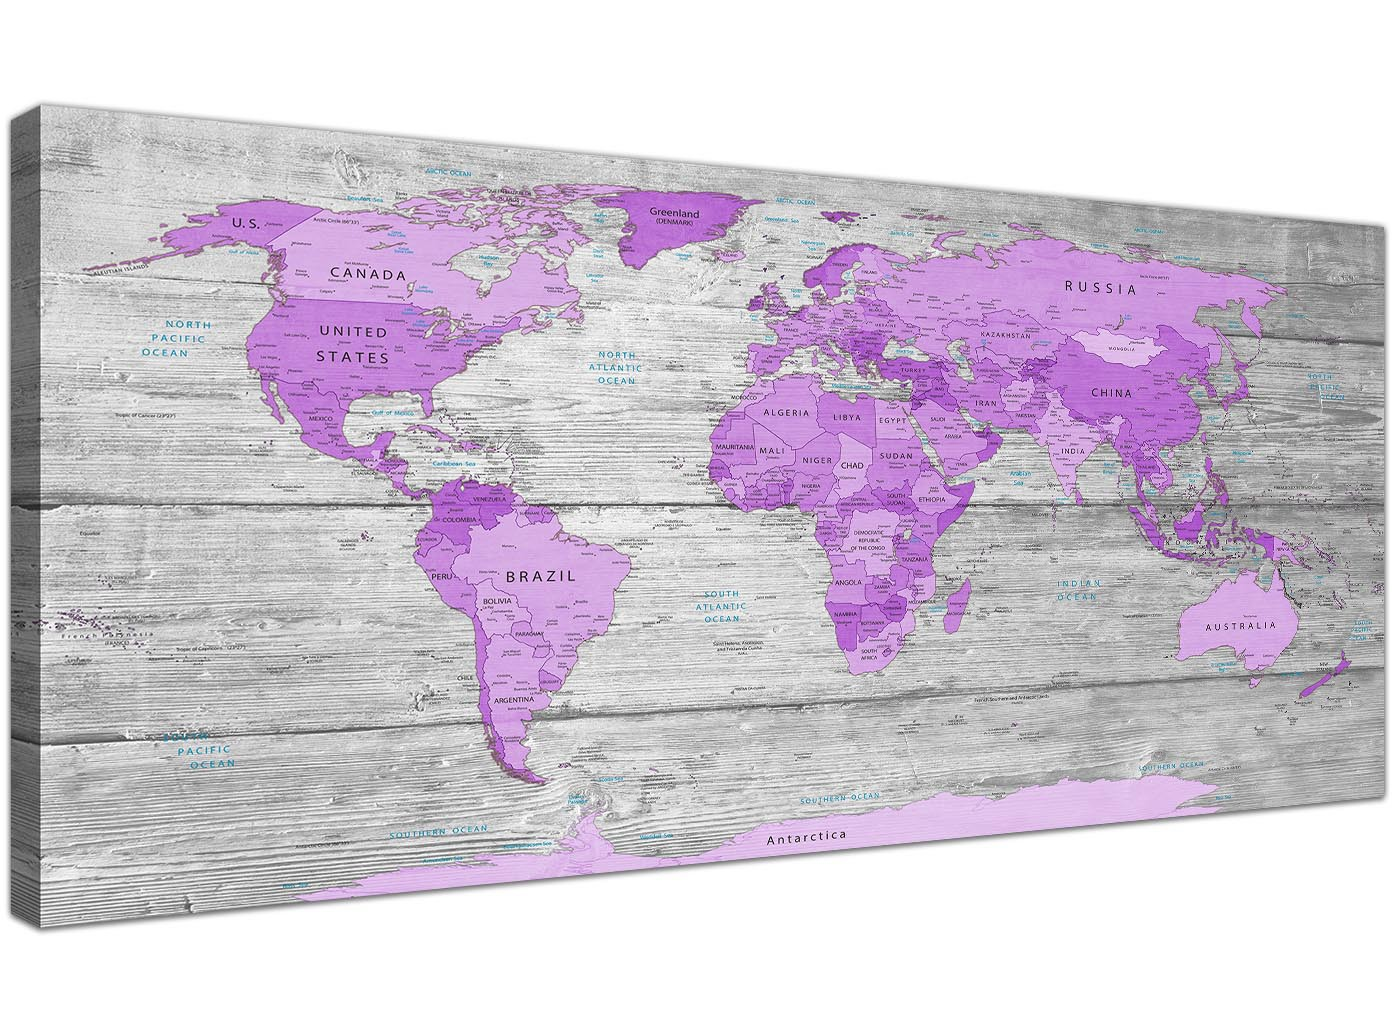 100 cm wide sofa bed bradington young sectional sofas large purple and grey map of world atlas canvas wall art ...